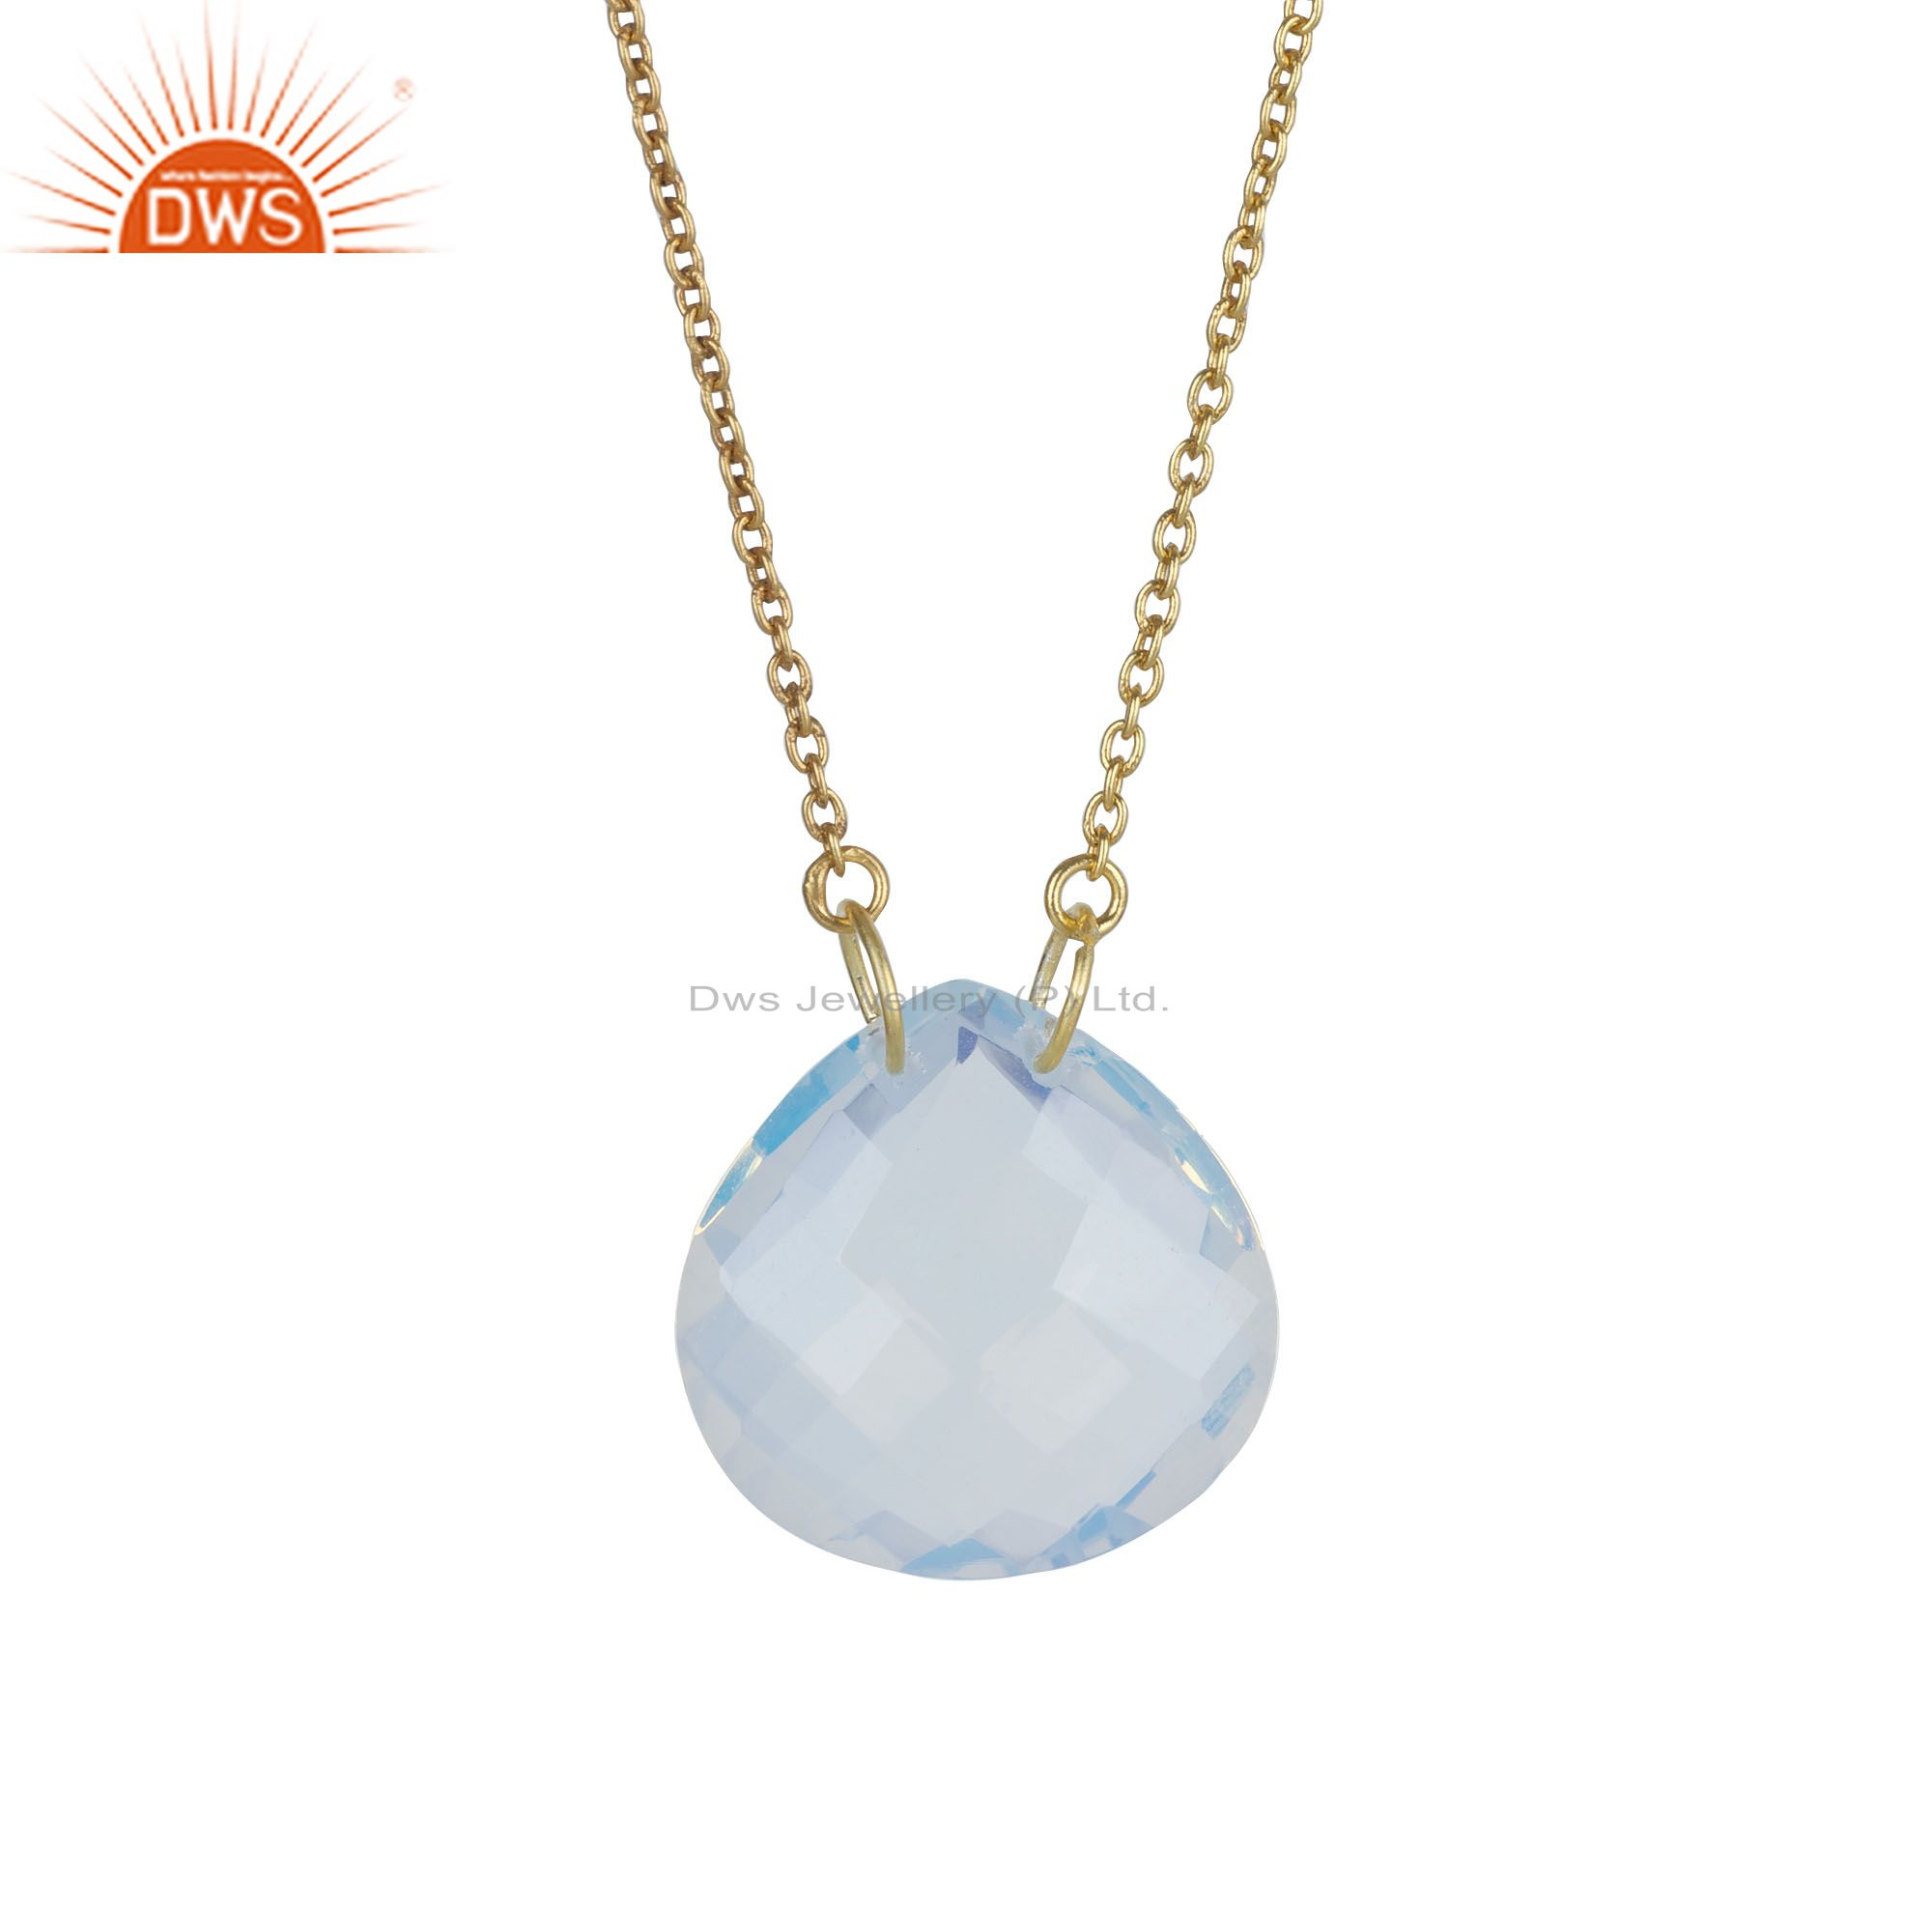 18K Gold Plated Sterling Silver Faceted Opalite Gemstone Pendant Chain Necklace